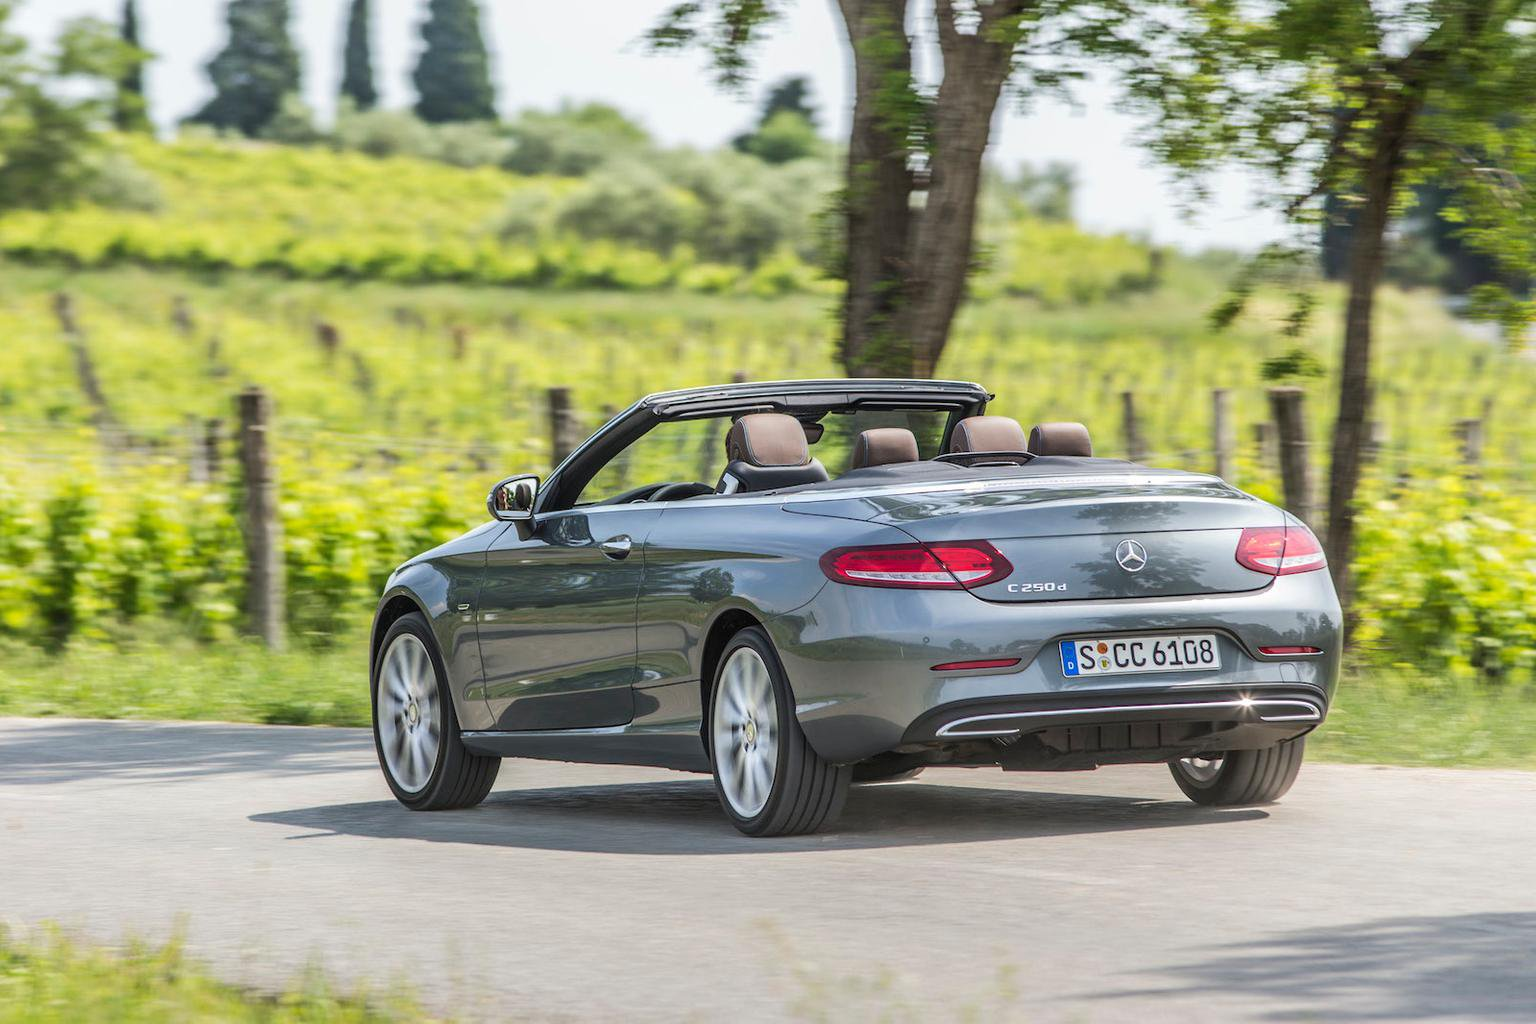 2016 Mercedes C 250 d Cabriolet review